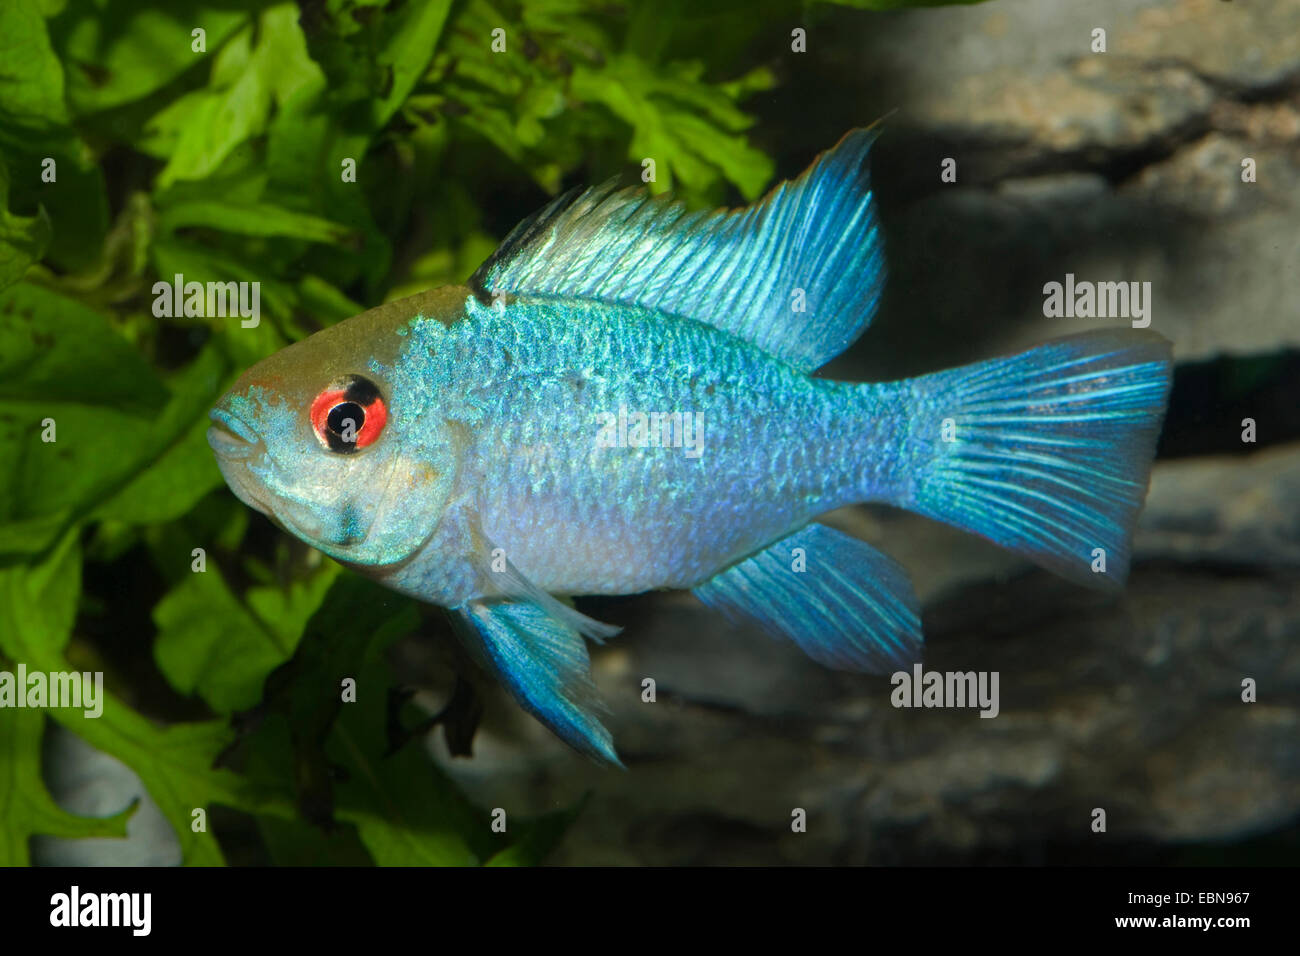 South American butterfly dwarf Cichlid (Mikrogeophagus ramirezi), breed blue - Stock Image